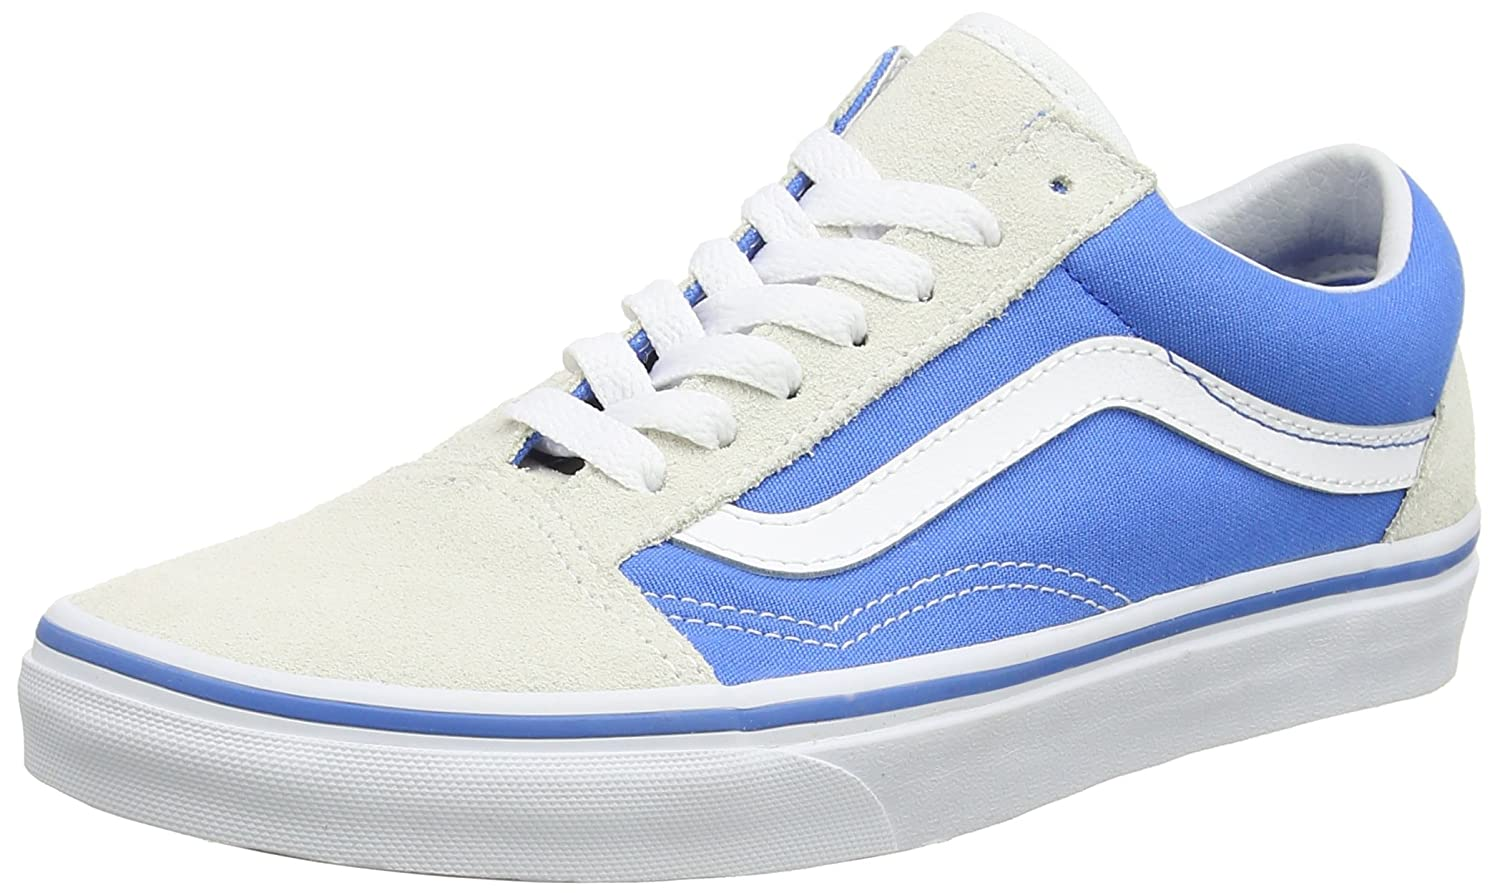 983898660b Vans Damen UA Old Skool Sneaker 41 EU|Blau (French Blue/True White) -  ecrider.de